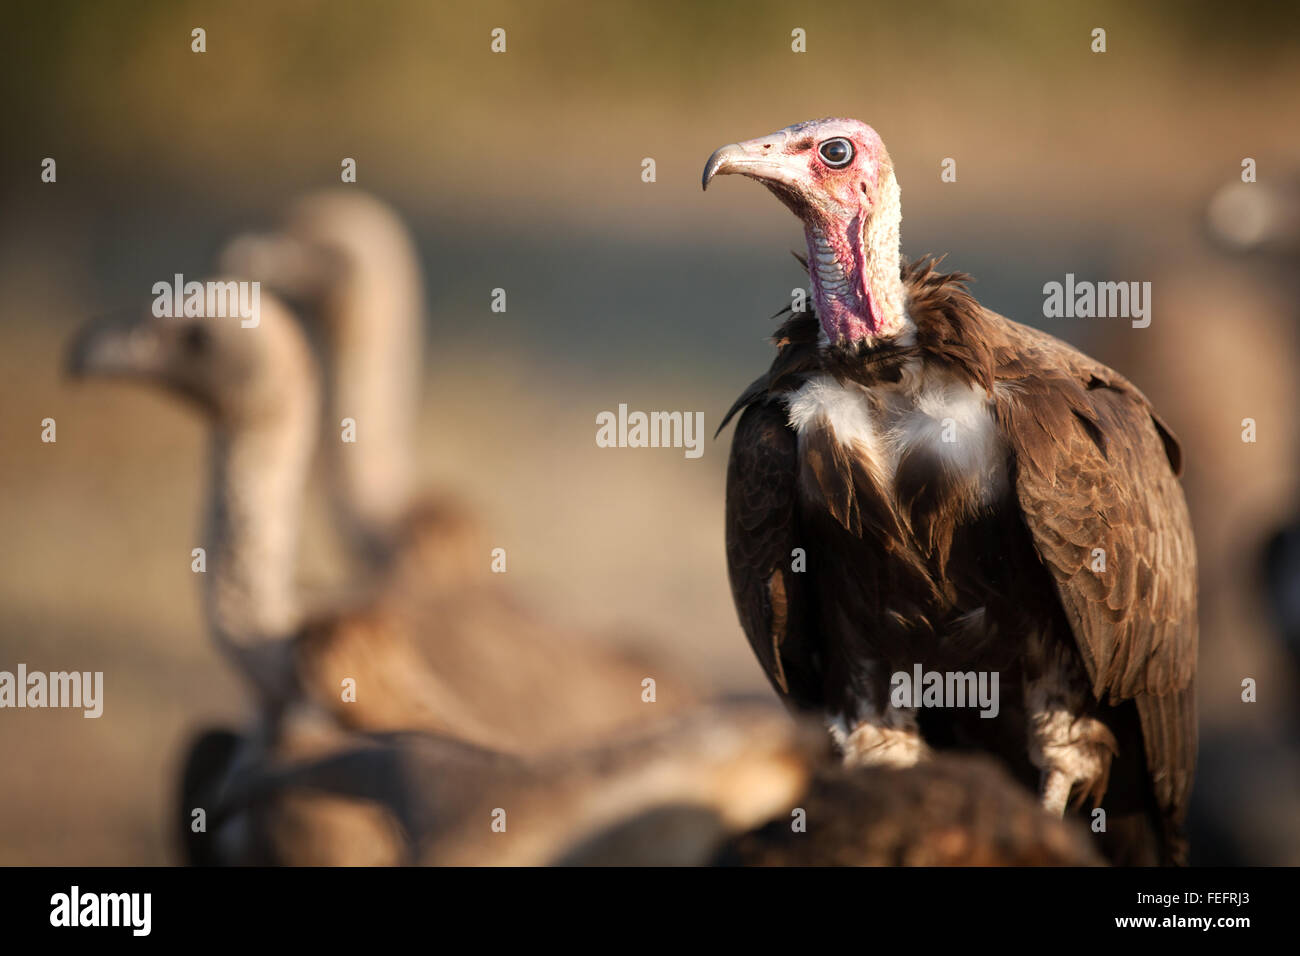 Vulture on a carcass - Stock Image